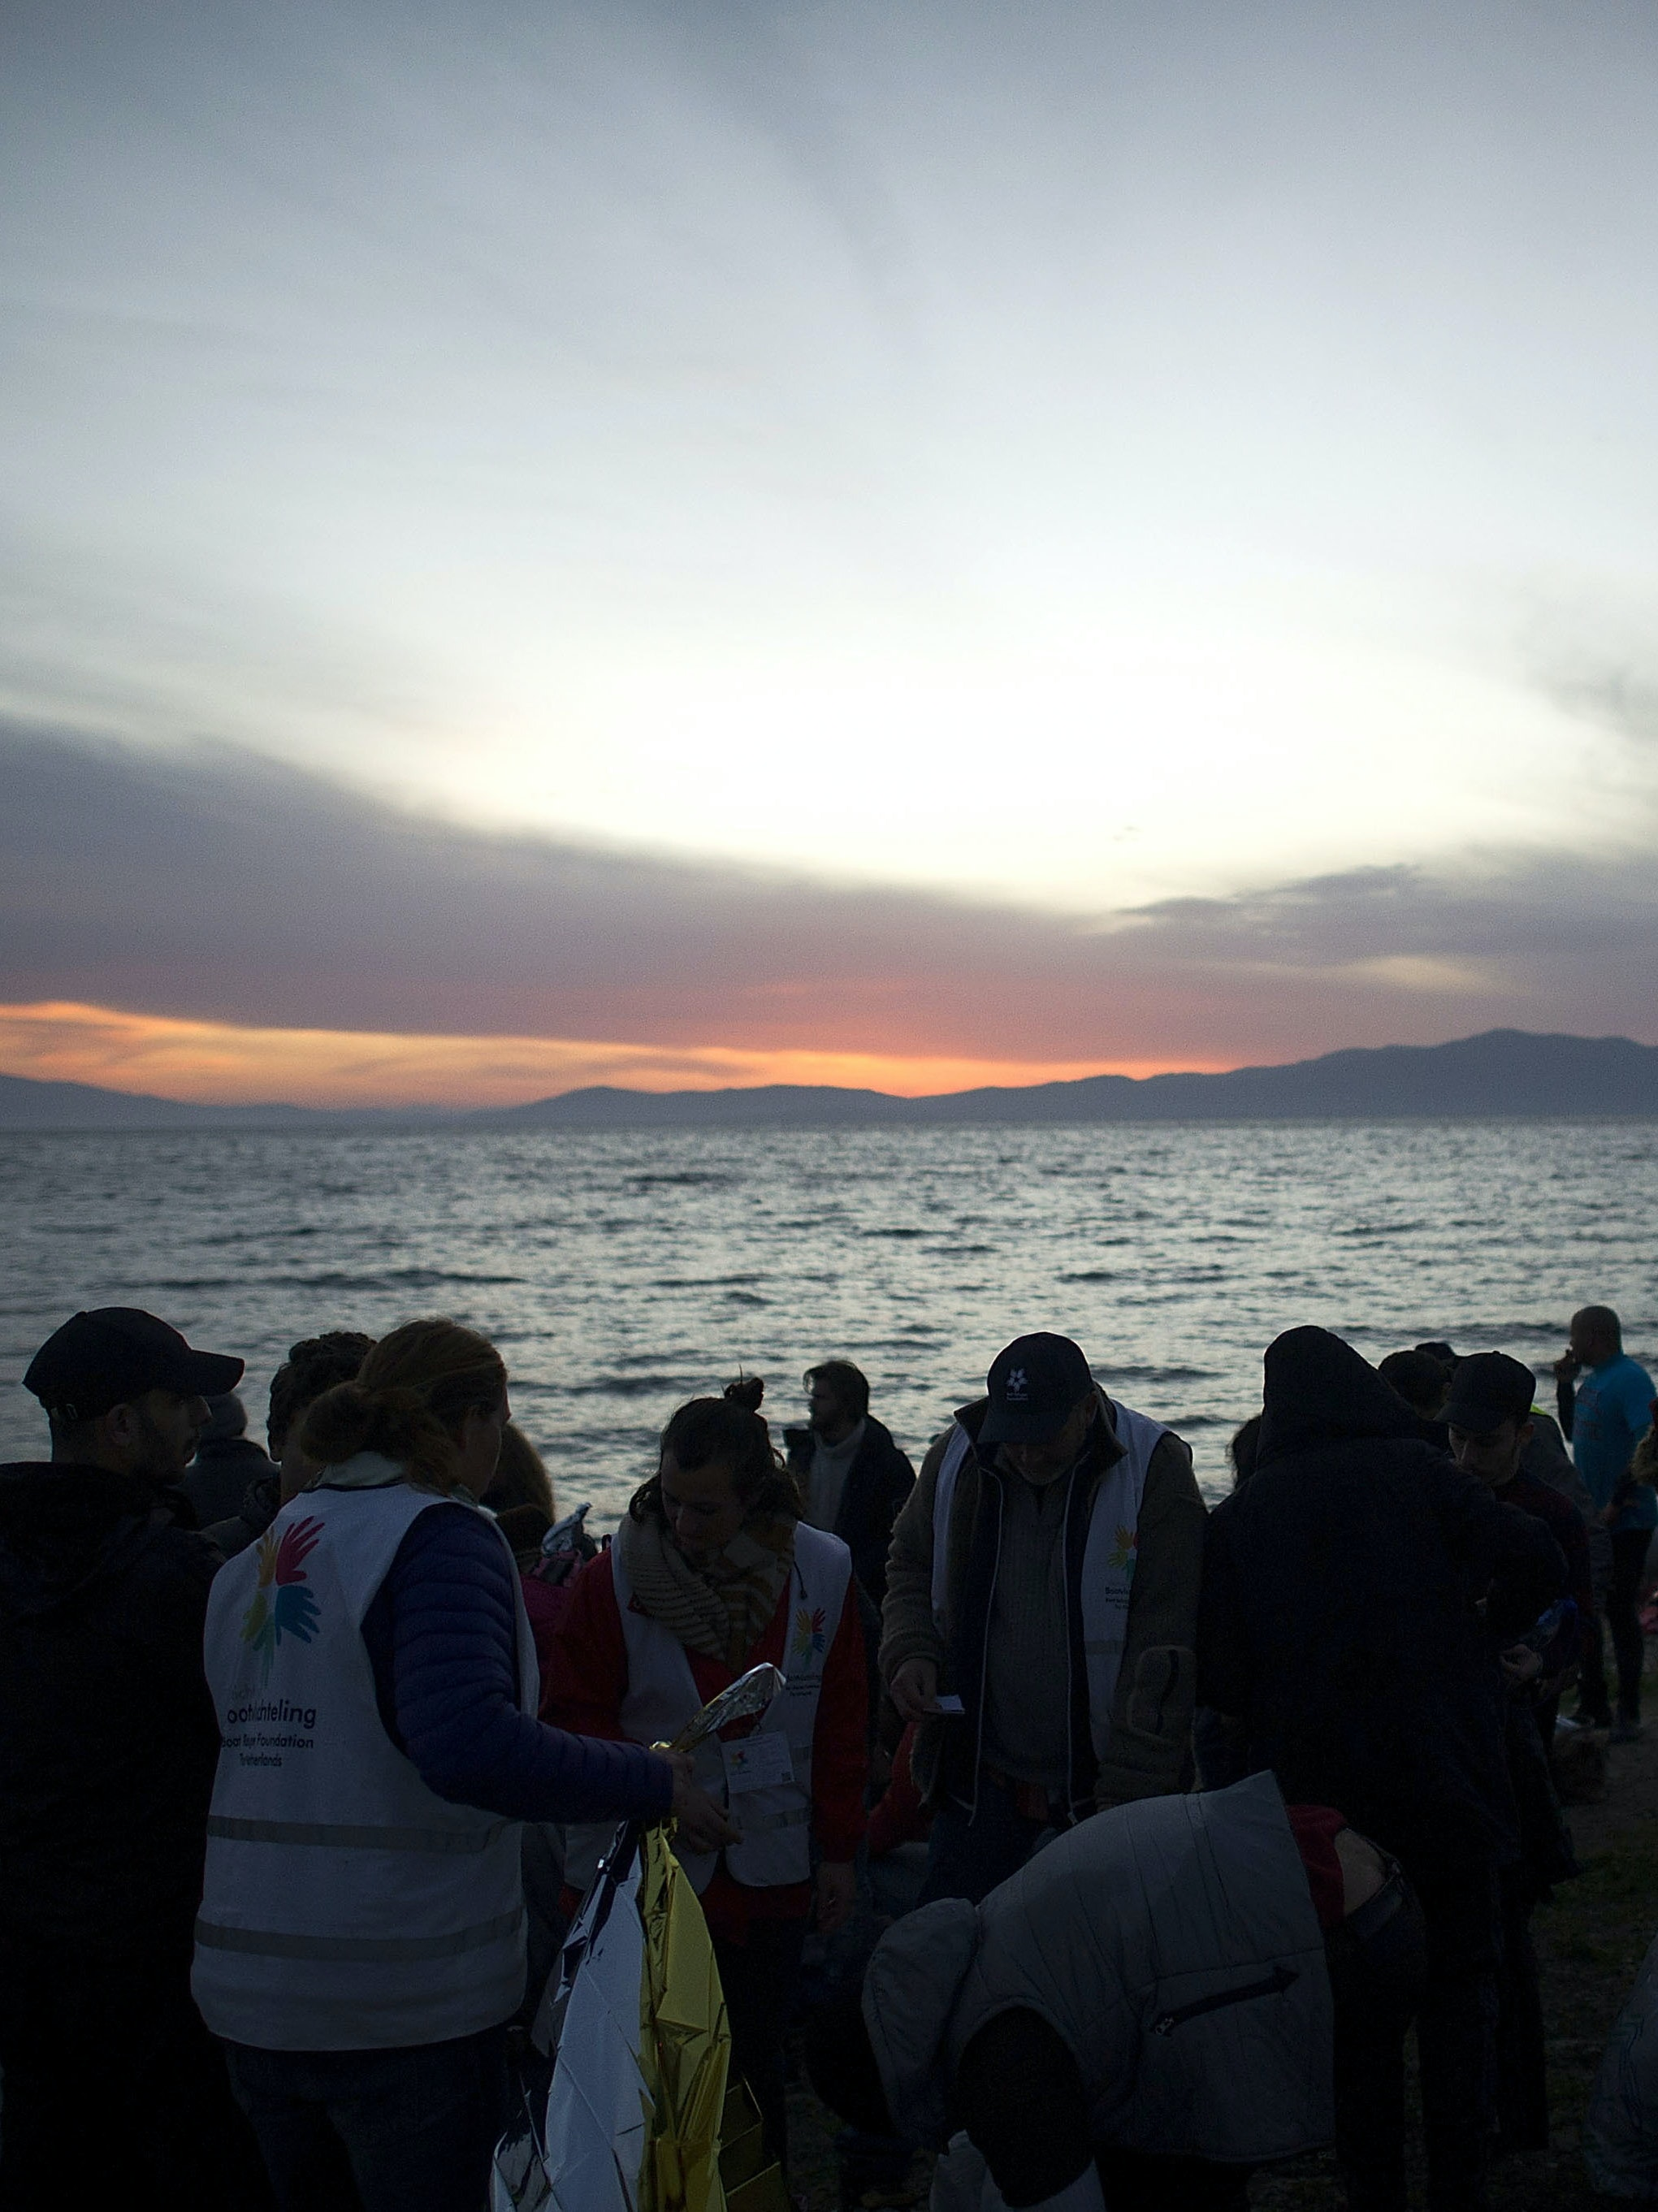 Refugees from mainly Afghanistan and Syria are seen shortly after arriving on an inflatable boat with other refugees, crossing the sea from Turkey to Lesbos, some 5 kilometres south of the capital of the Island, on March 12, 2016 in Mytelene, Greece. Migrants and refugees are still arriving on the shores of the Island of Lesbos, while the multinational force of the Standing NATO (North Atlantic Treaty Organisation) Maritime Group 2 are patrolling the coast of the Greek Island of Lesbos and the Turkish coast. Turkey announced on Monday to take back illegal migrants in exchange for genuine refugees.